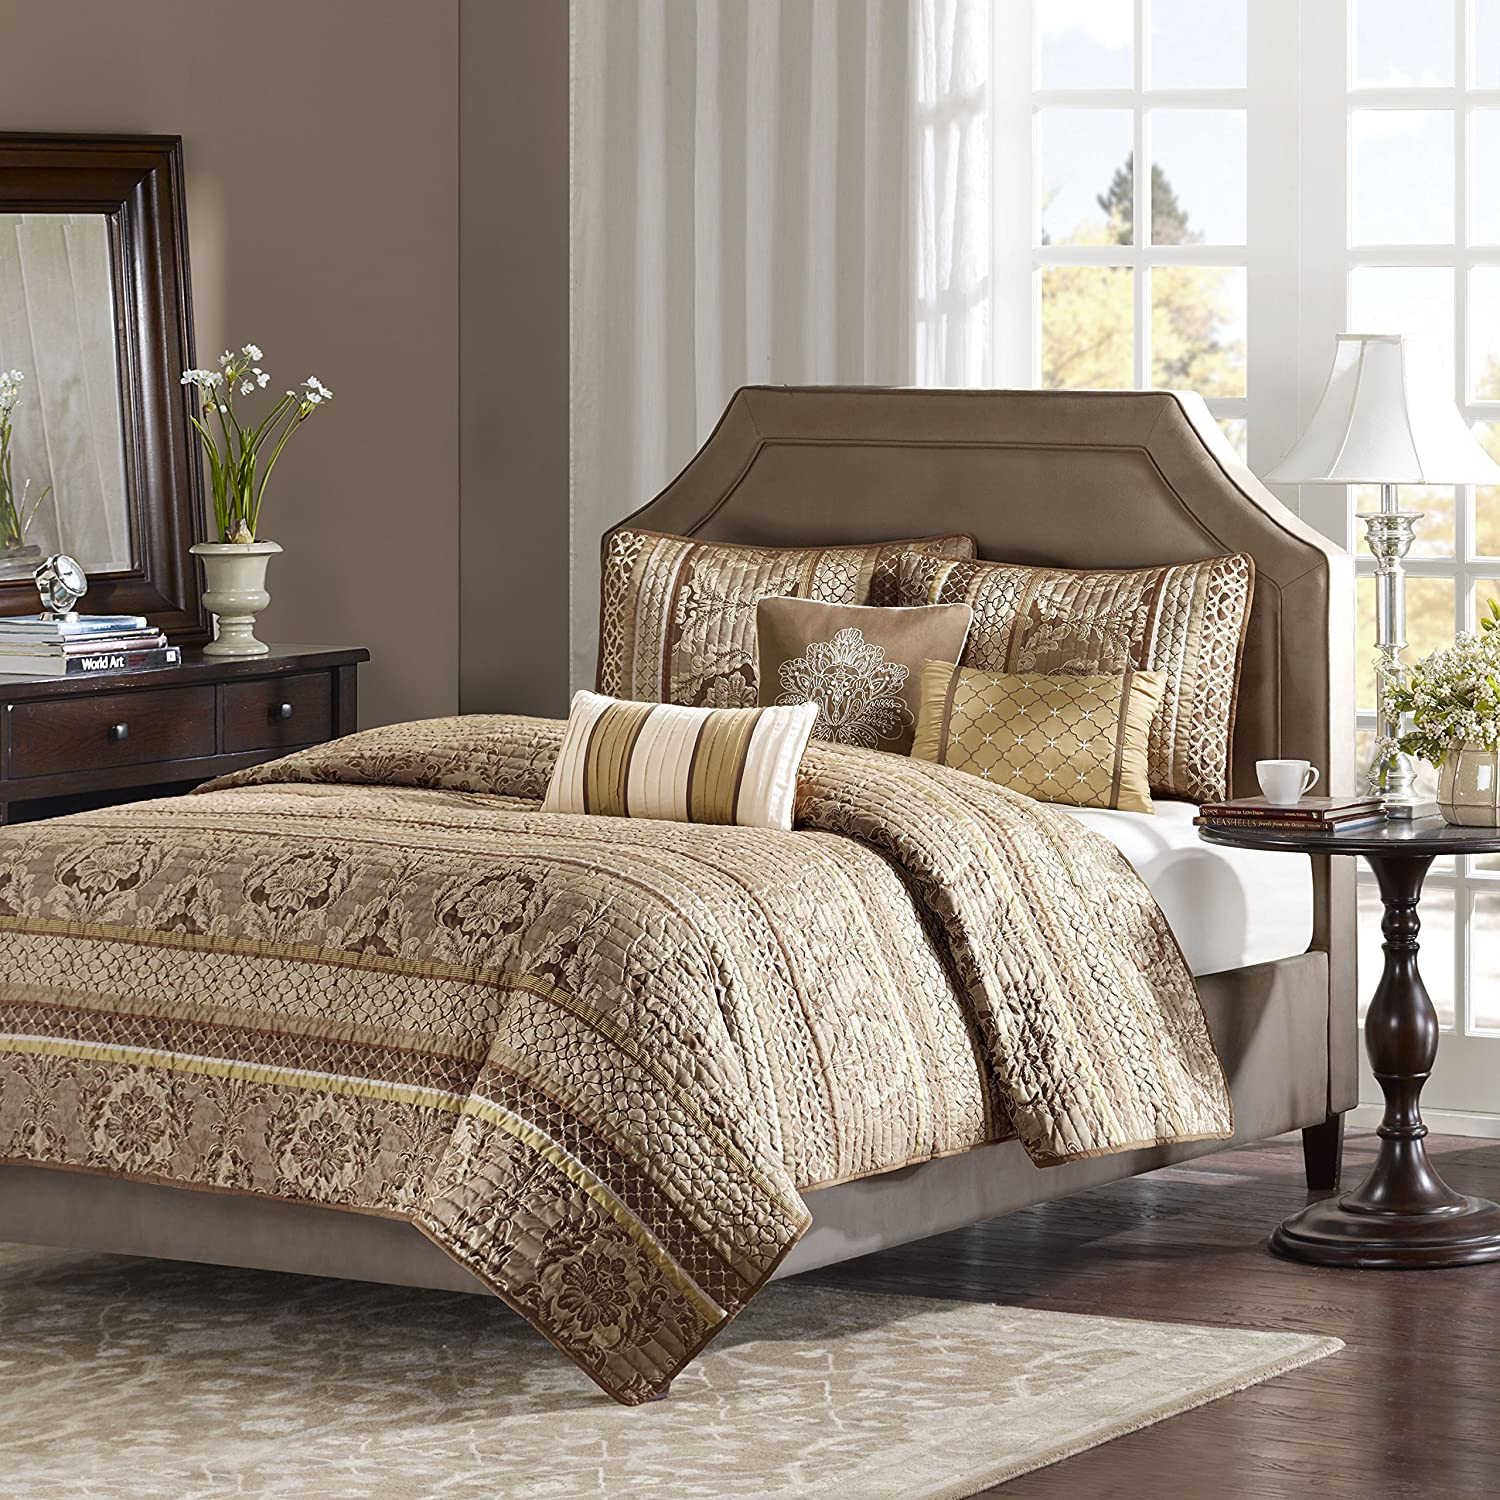 Madison Park Bellagio 6 Piece Quilted Coverlet Set, Full/Queen, Brown/Gold